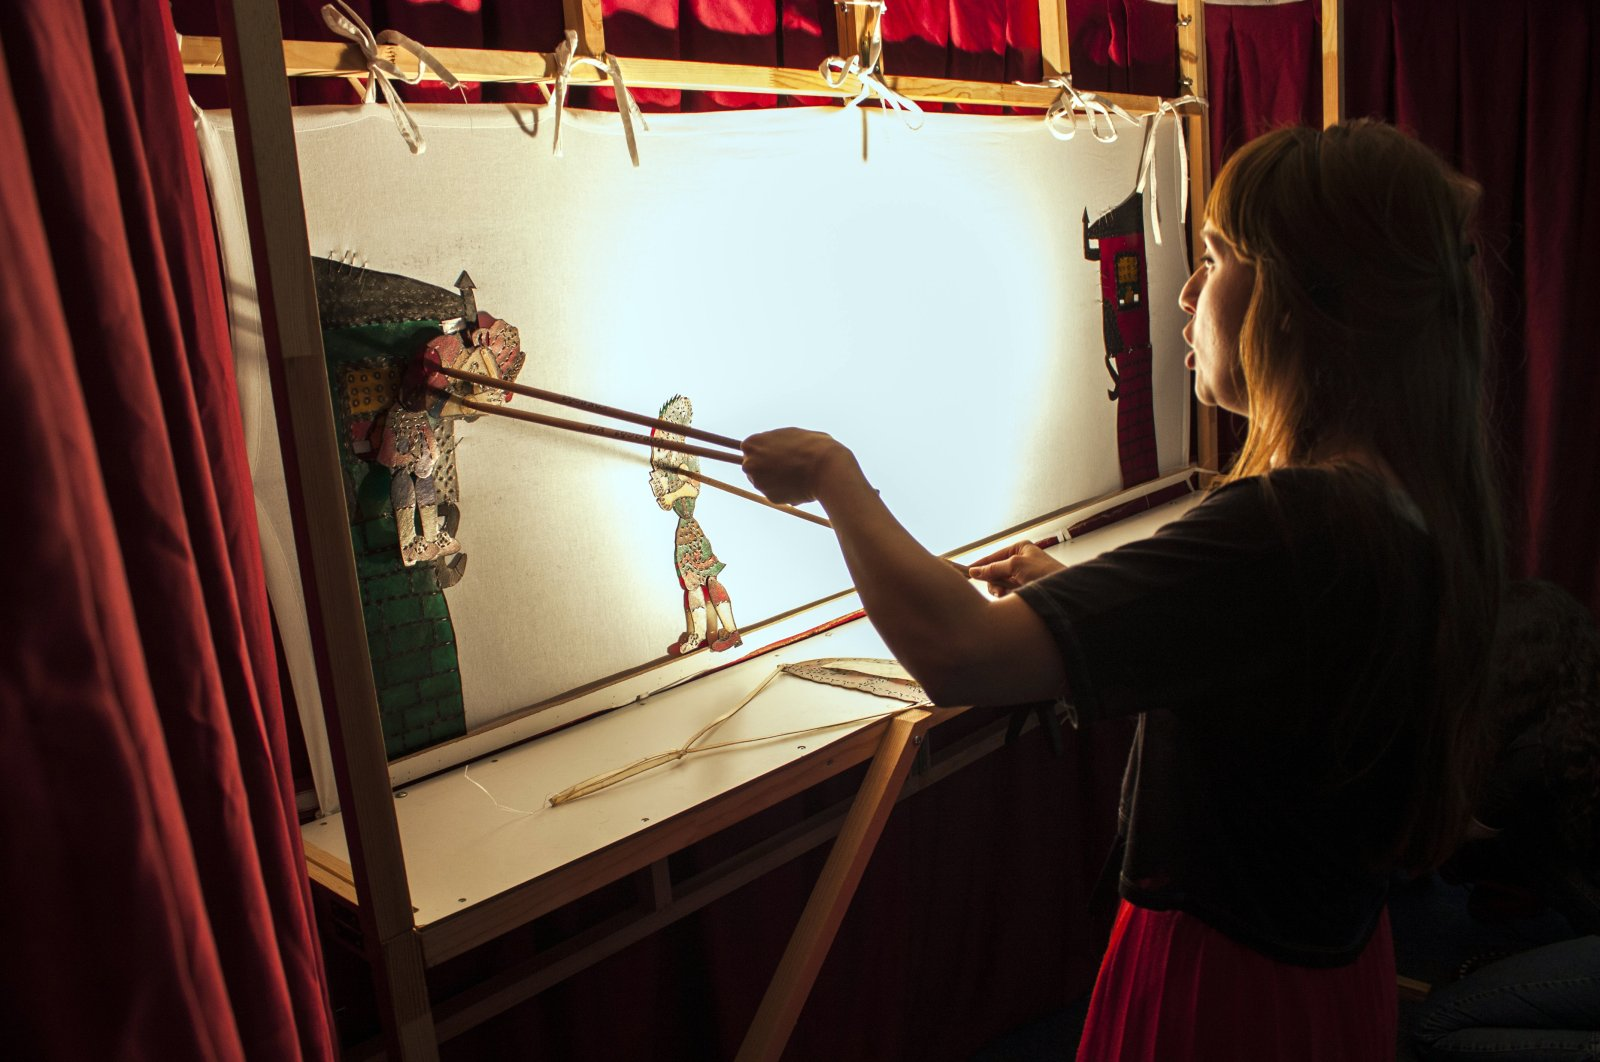 YEE London put on performances of Karagöz and Hacivat traditional Turkish shadow play in many U.K. primary schools and institutions in English and Turkish. (Courtesy of YEE)